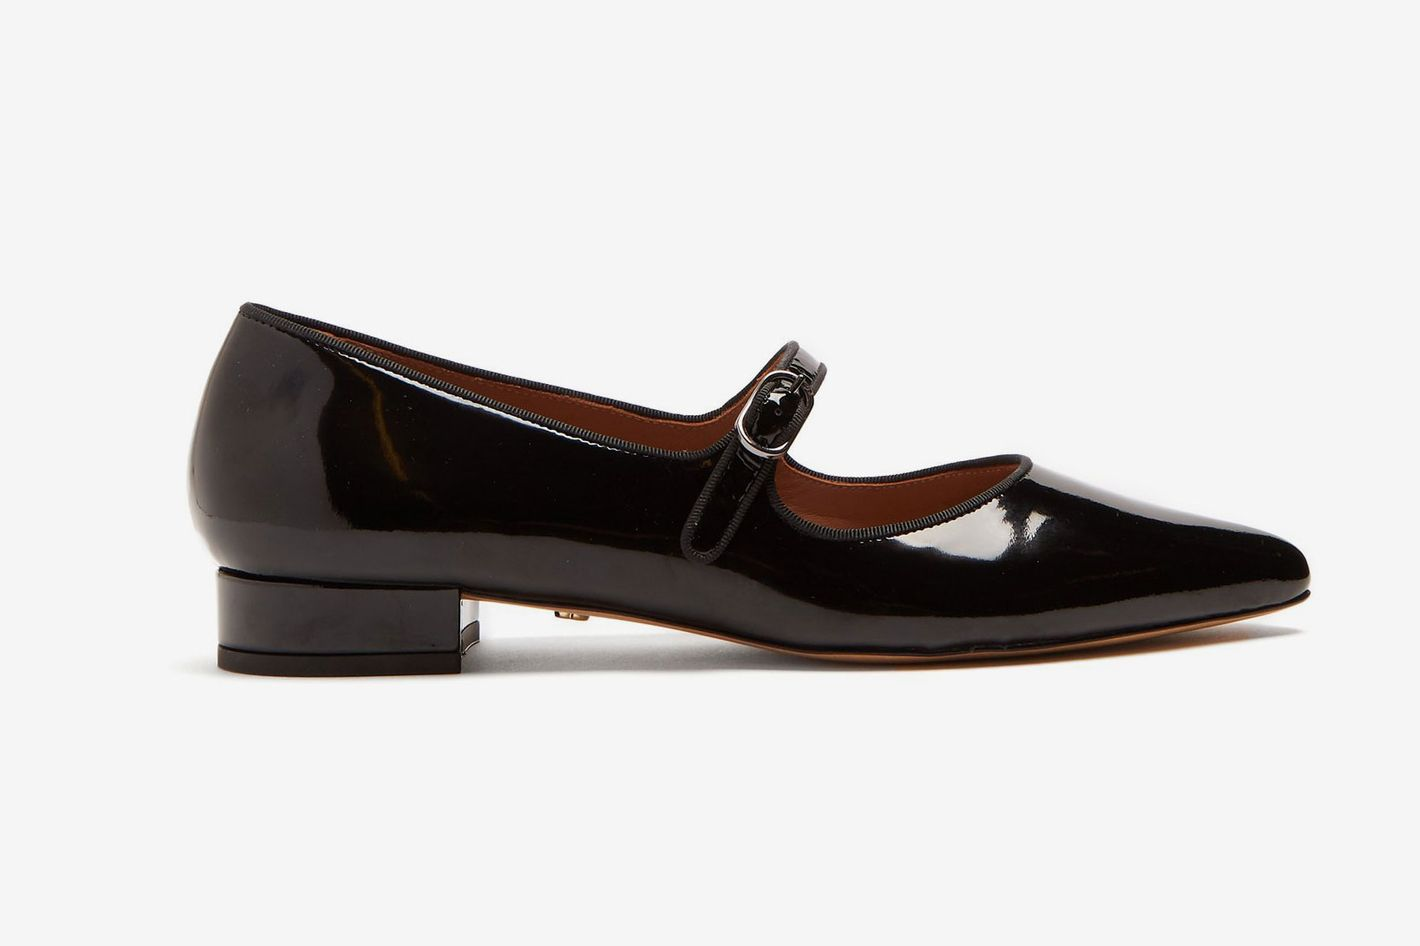 Alexa Chung Point-Toe Patent Leather Flats